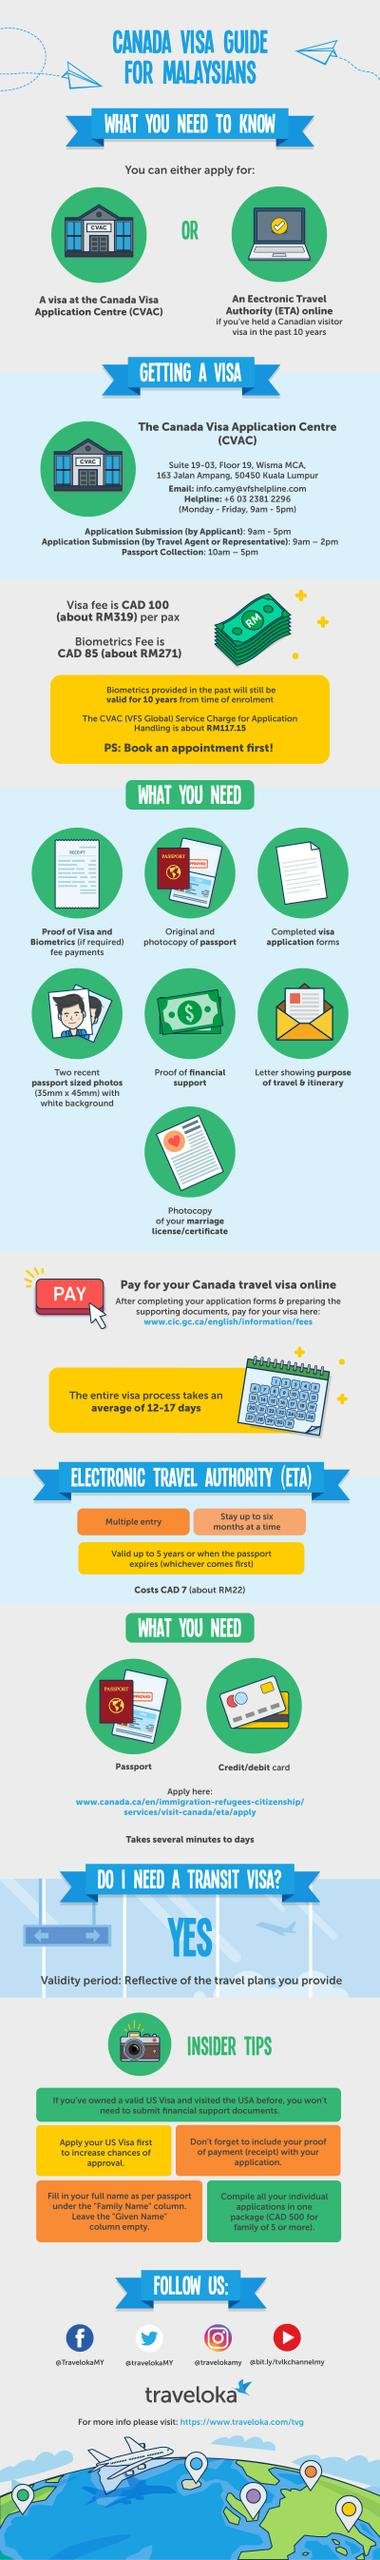 Canada Visa Guide For Malaysians 2020 Traveloka My